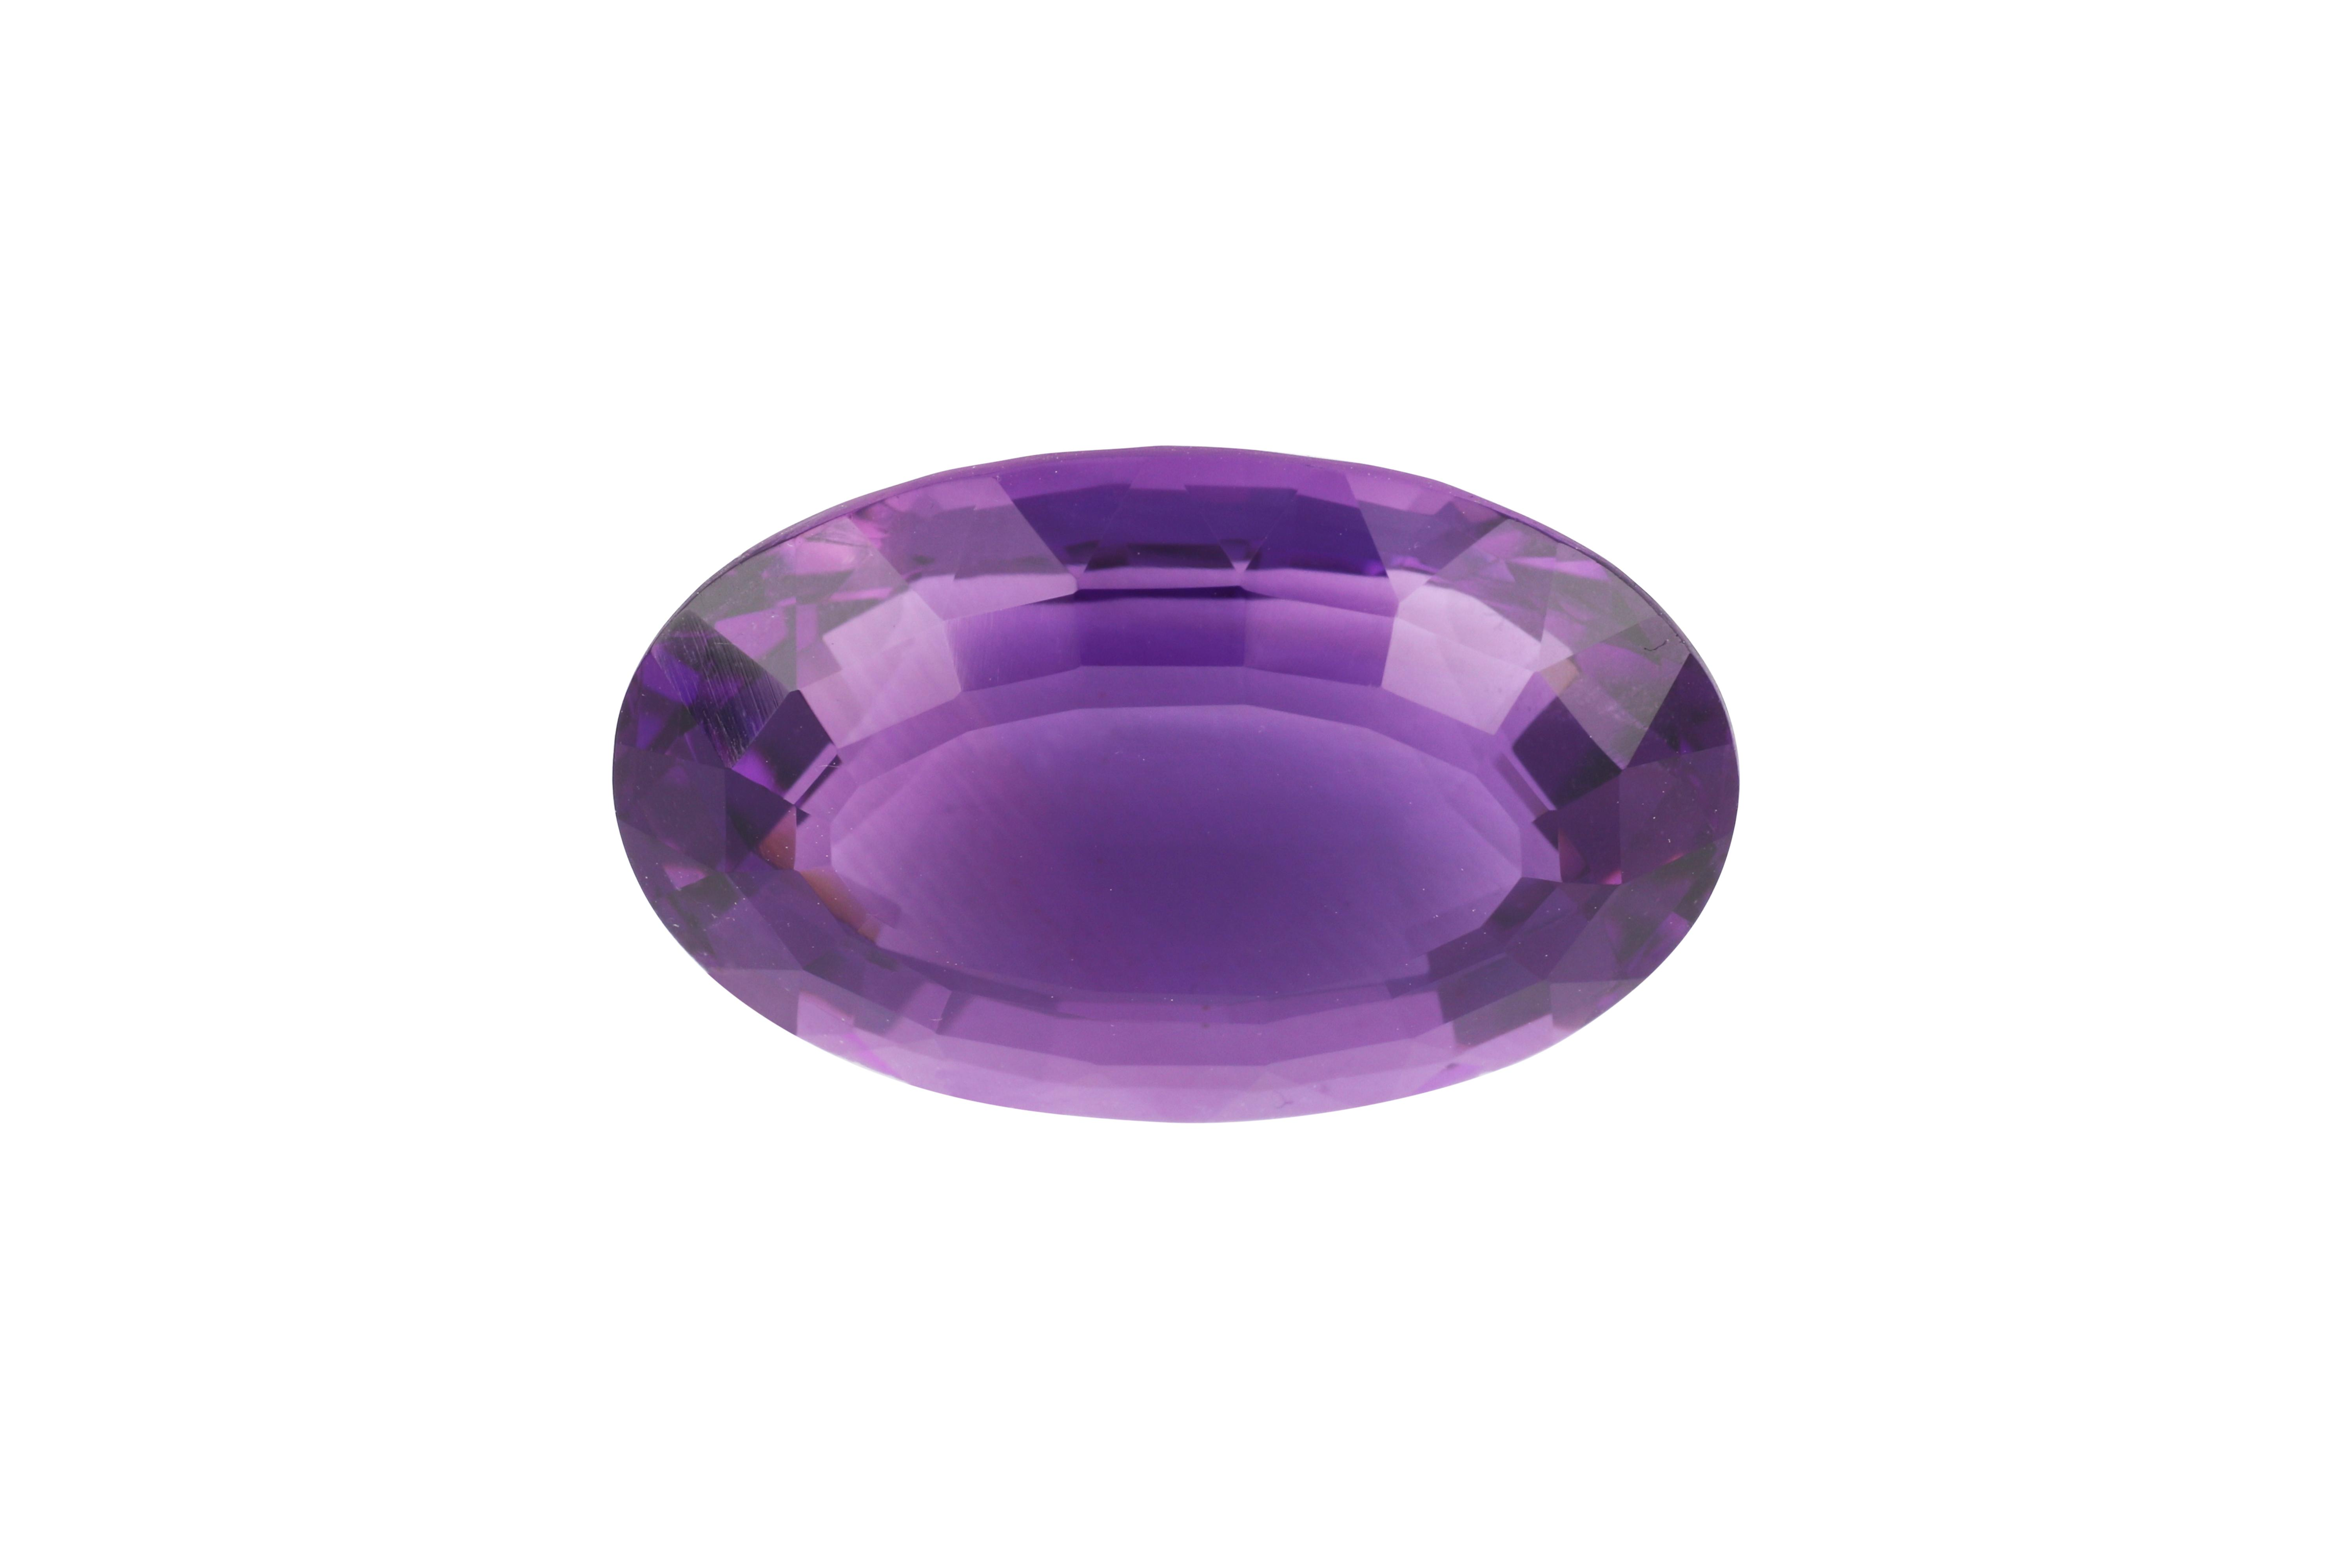 27ct loose oval faceted amethyst